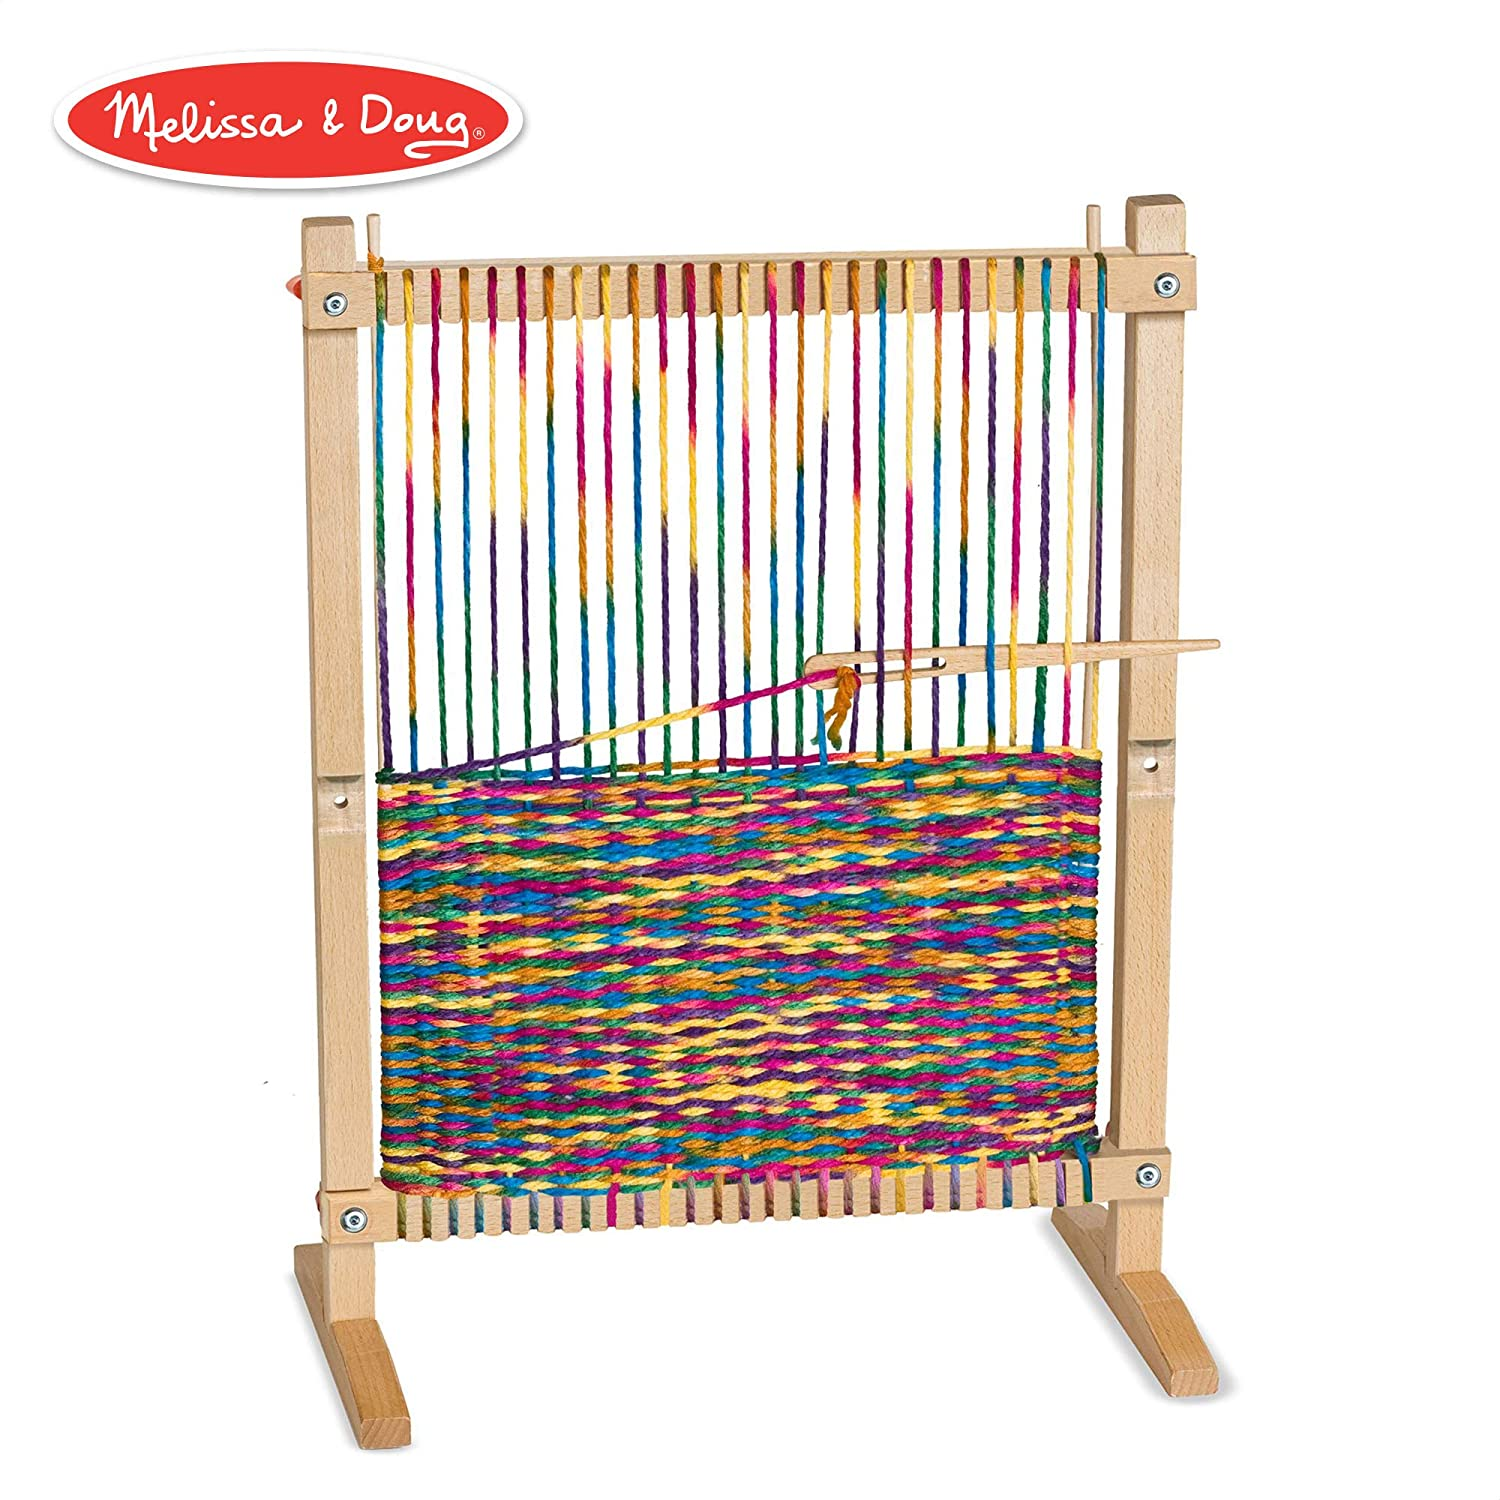 Sensational Melissa Doug Wooden Multi Craft Weaving Loom Arts Crafts Extra Large Frame Develops Creativity And Motor Skills 16 5 H X 22 75 W X 9 5 L Download Free Architecture Designs Intelgarnamadebymaigaardcom